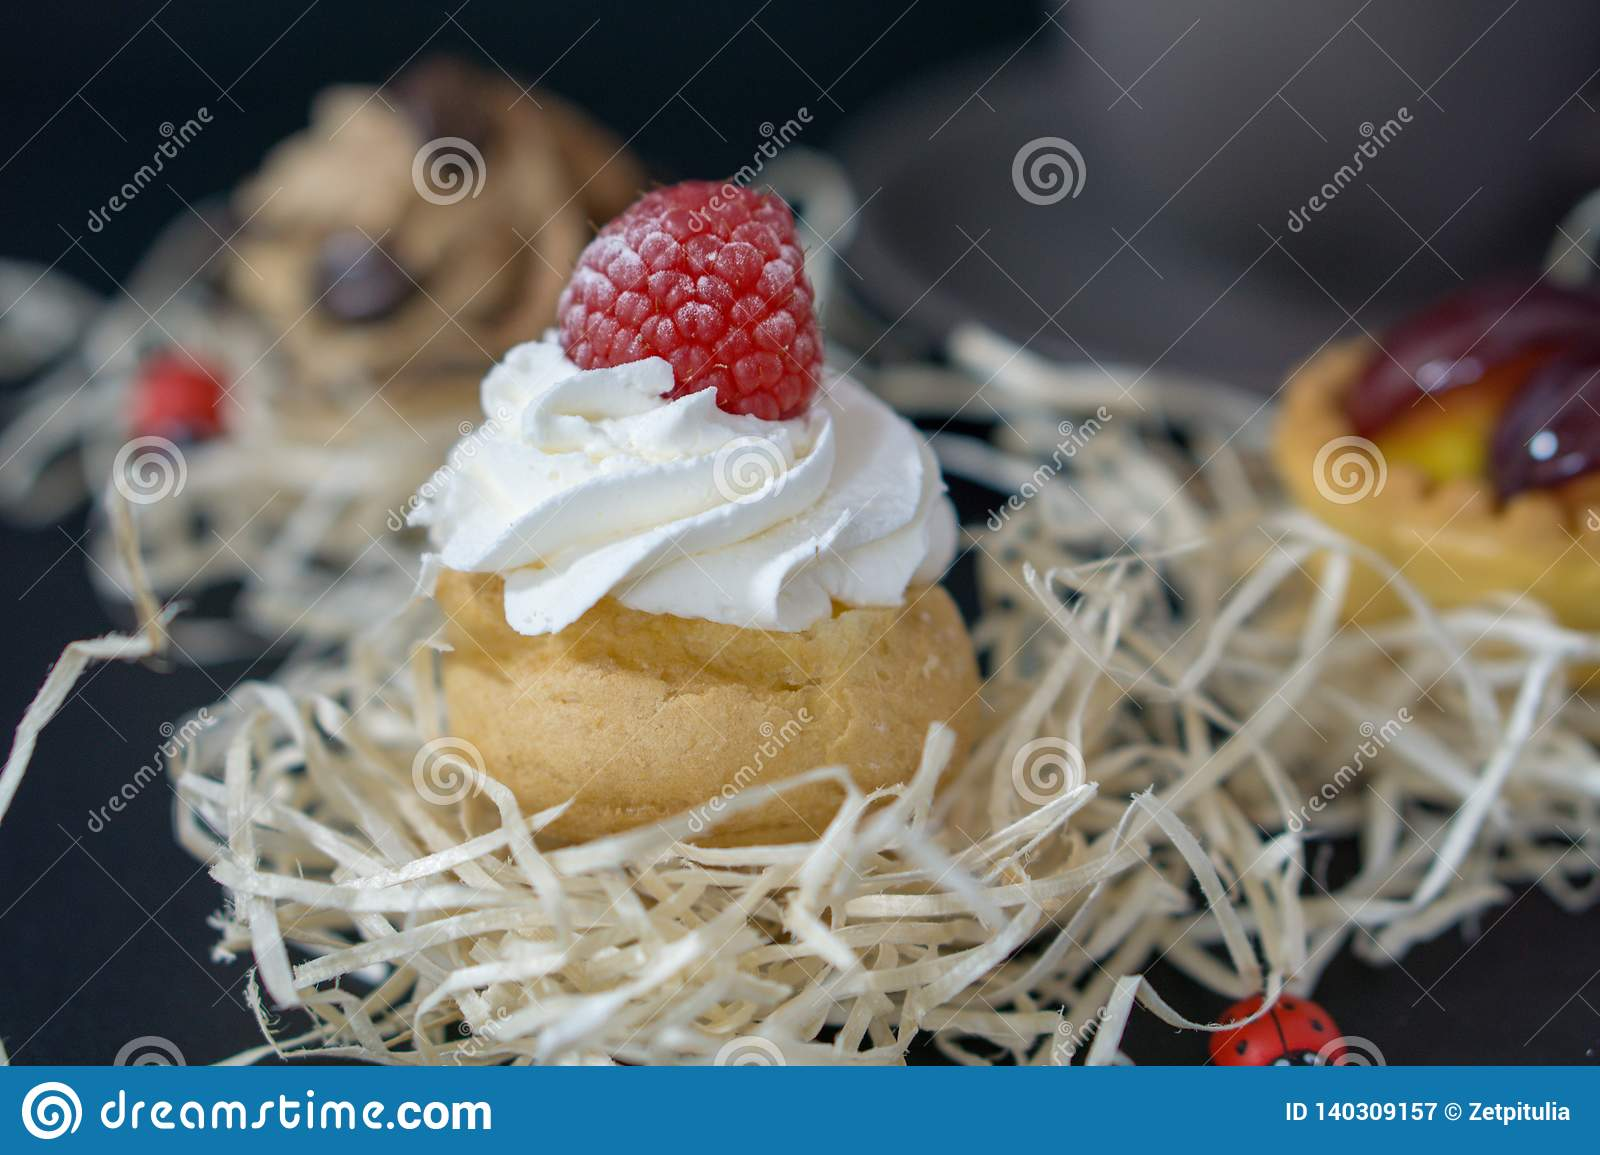 Divine cakes with raspberries and cream, the background is blurred with other cak